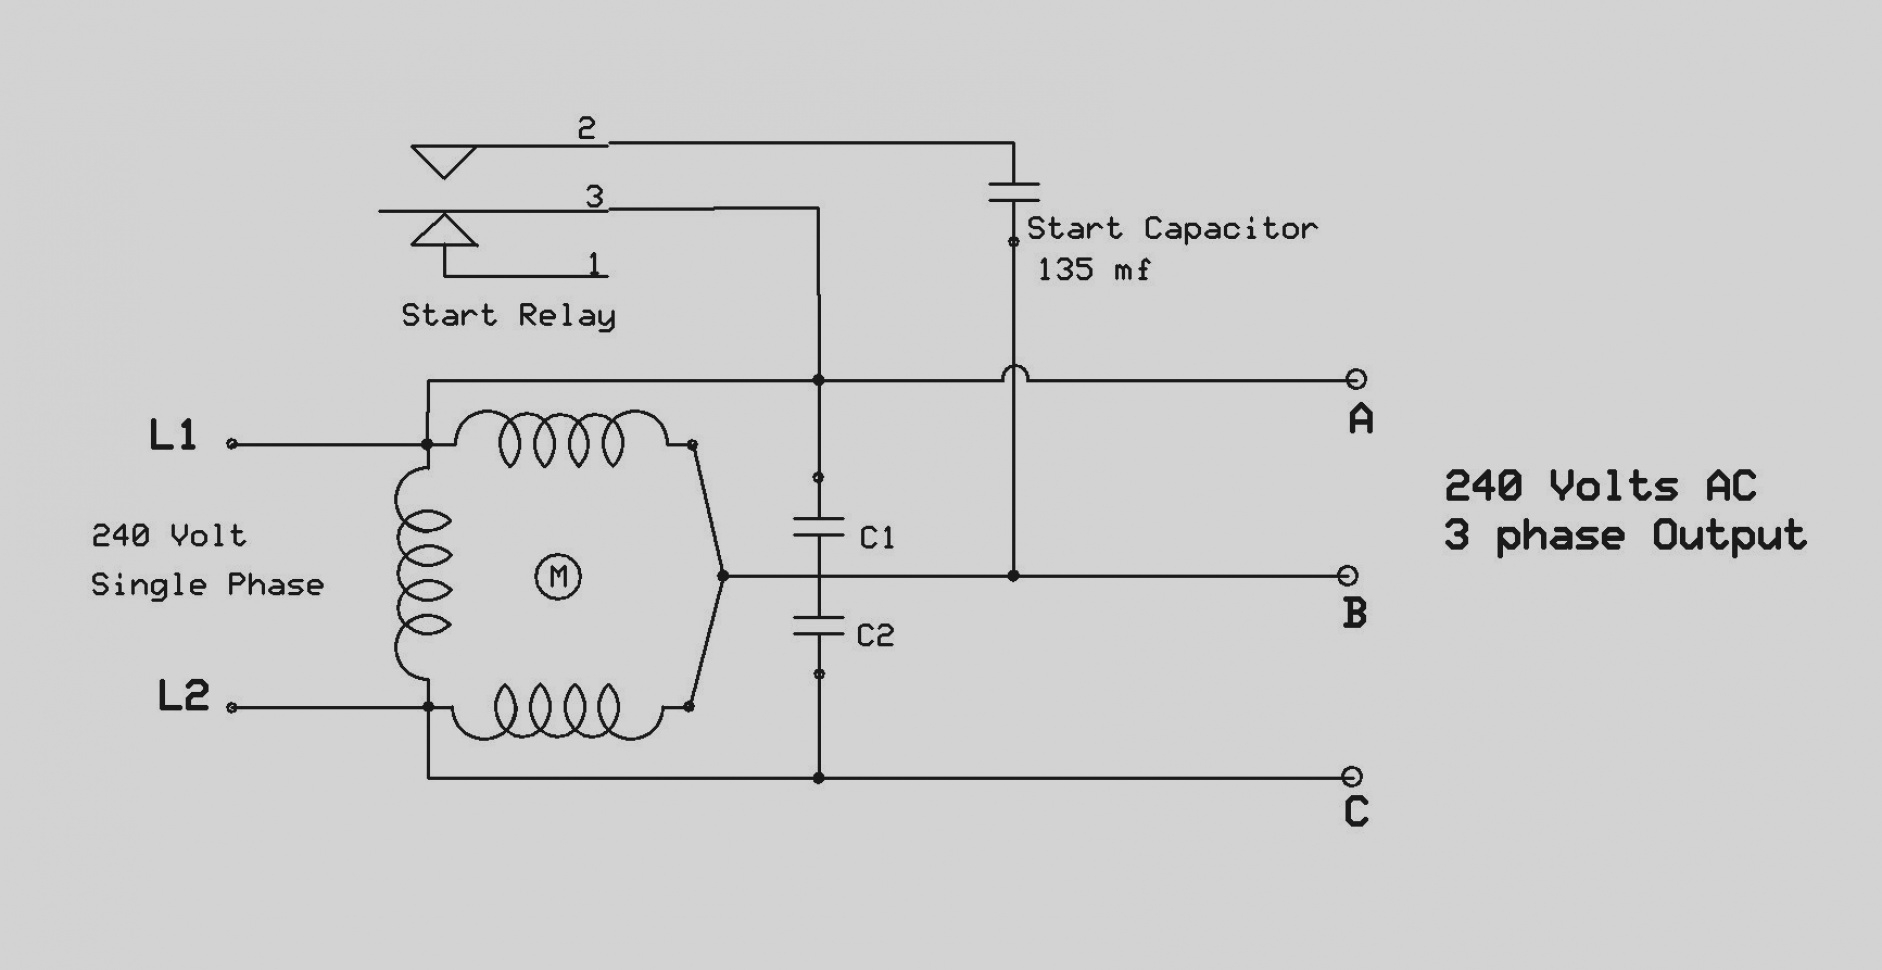 baldor 1.5 hp wiring diagram Download-Baldor 1 5 Hp Wiring Diagram wiring  diagrams 2